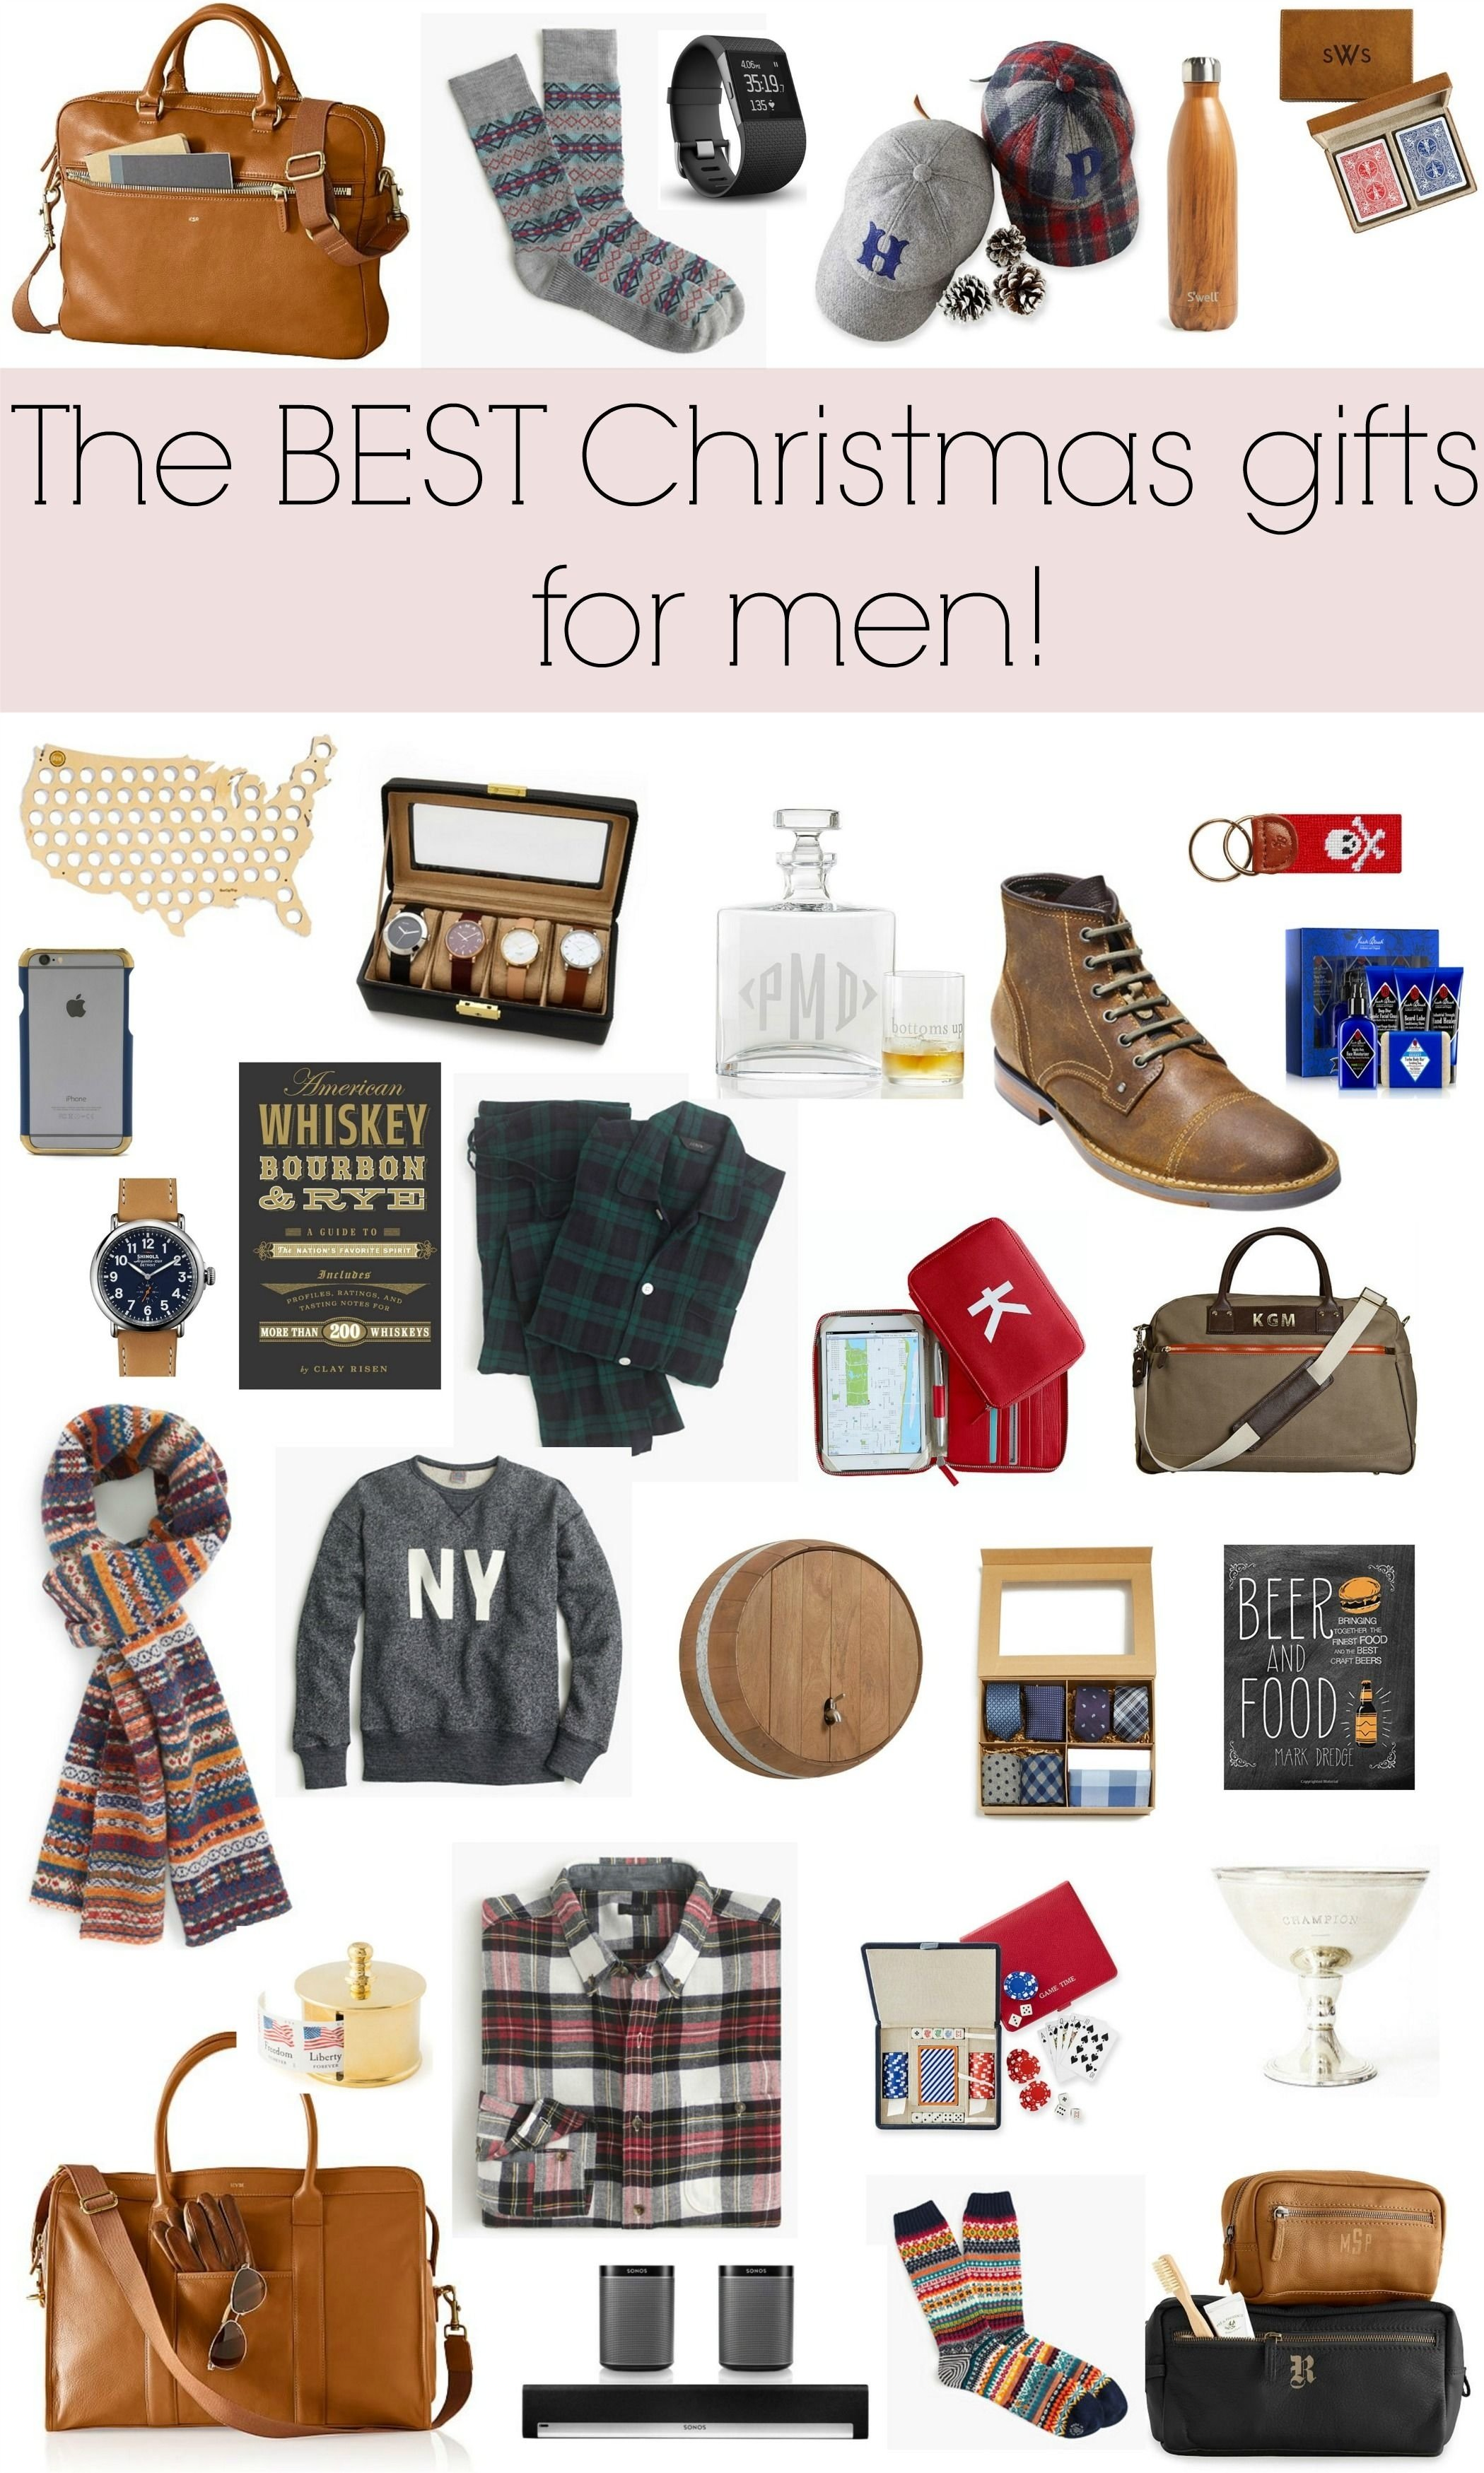 10 Attractive Christmas Gift Ideas For Him the best gifts for men holiday gift guide gingham and christmas gifts 5 2021